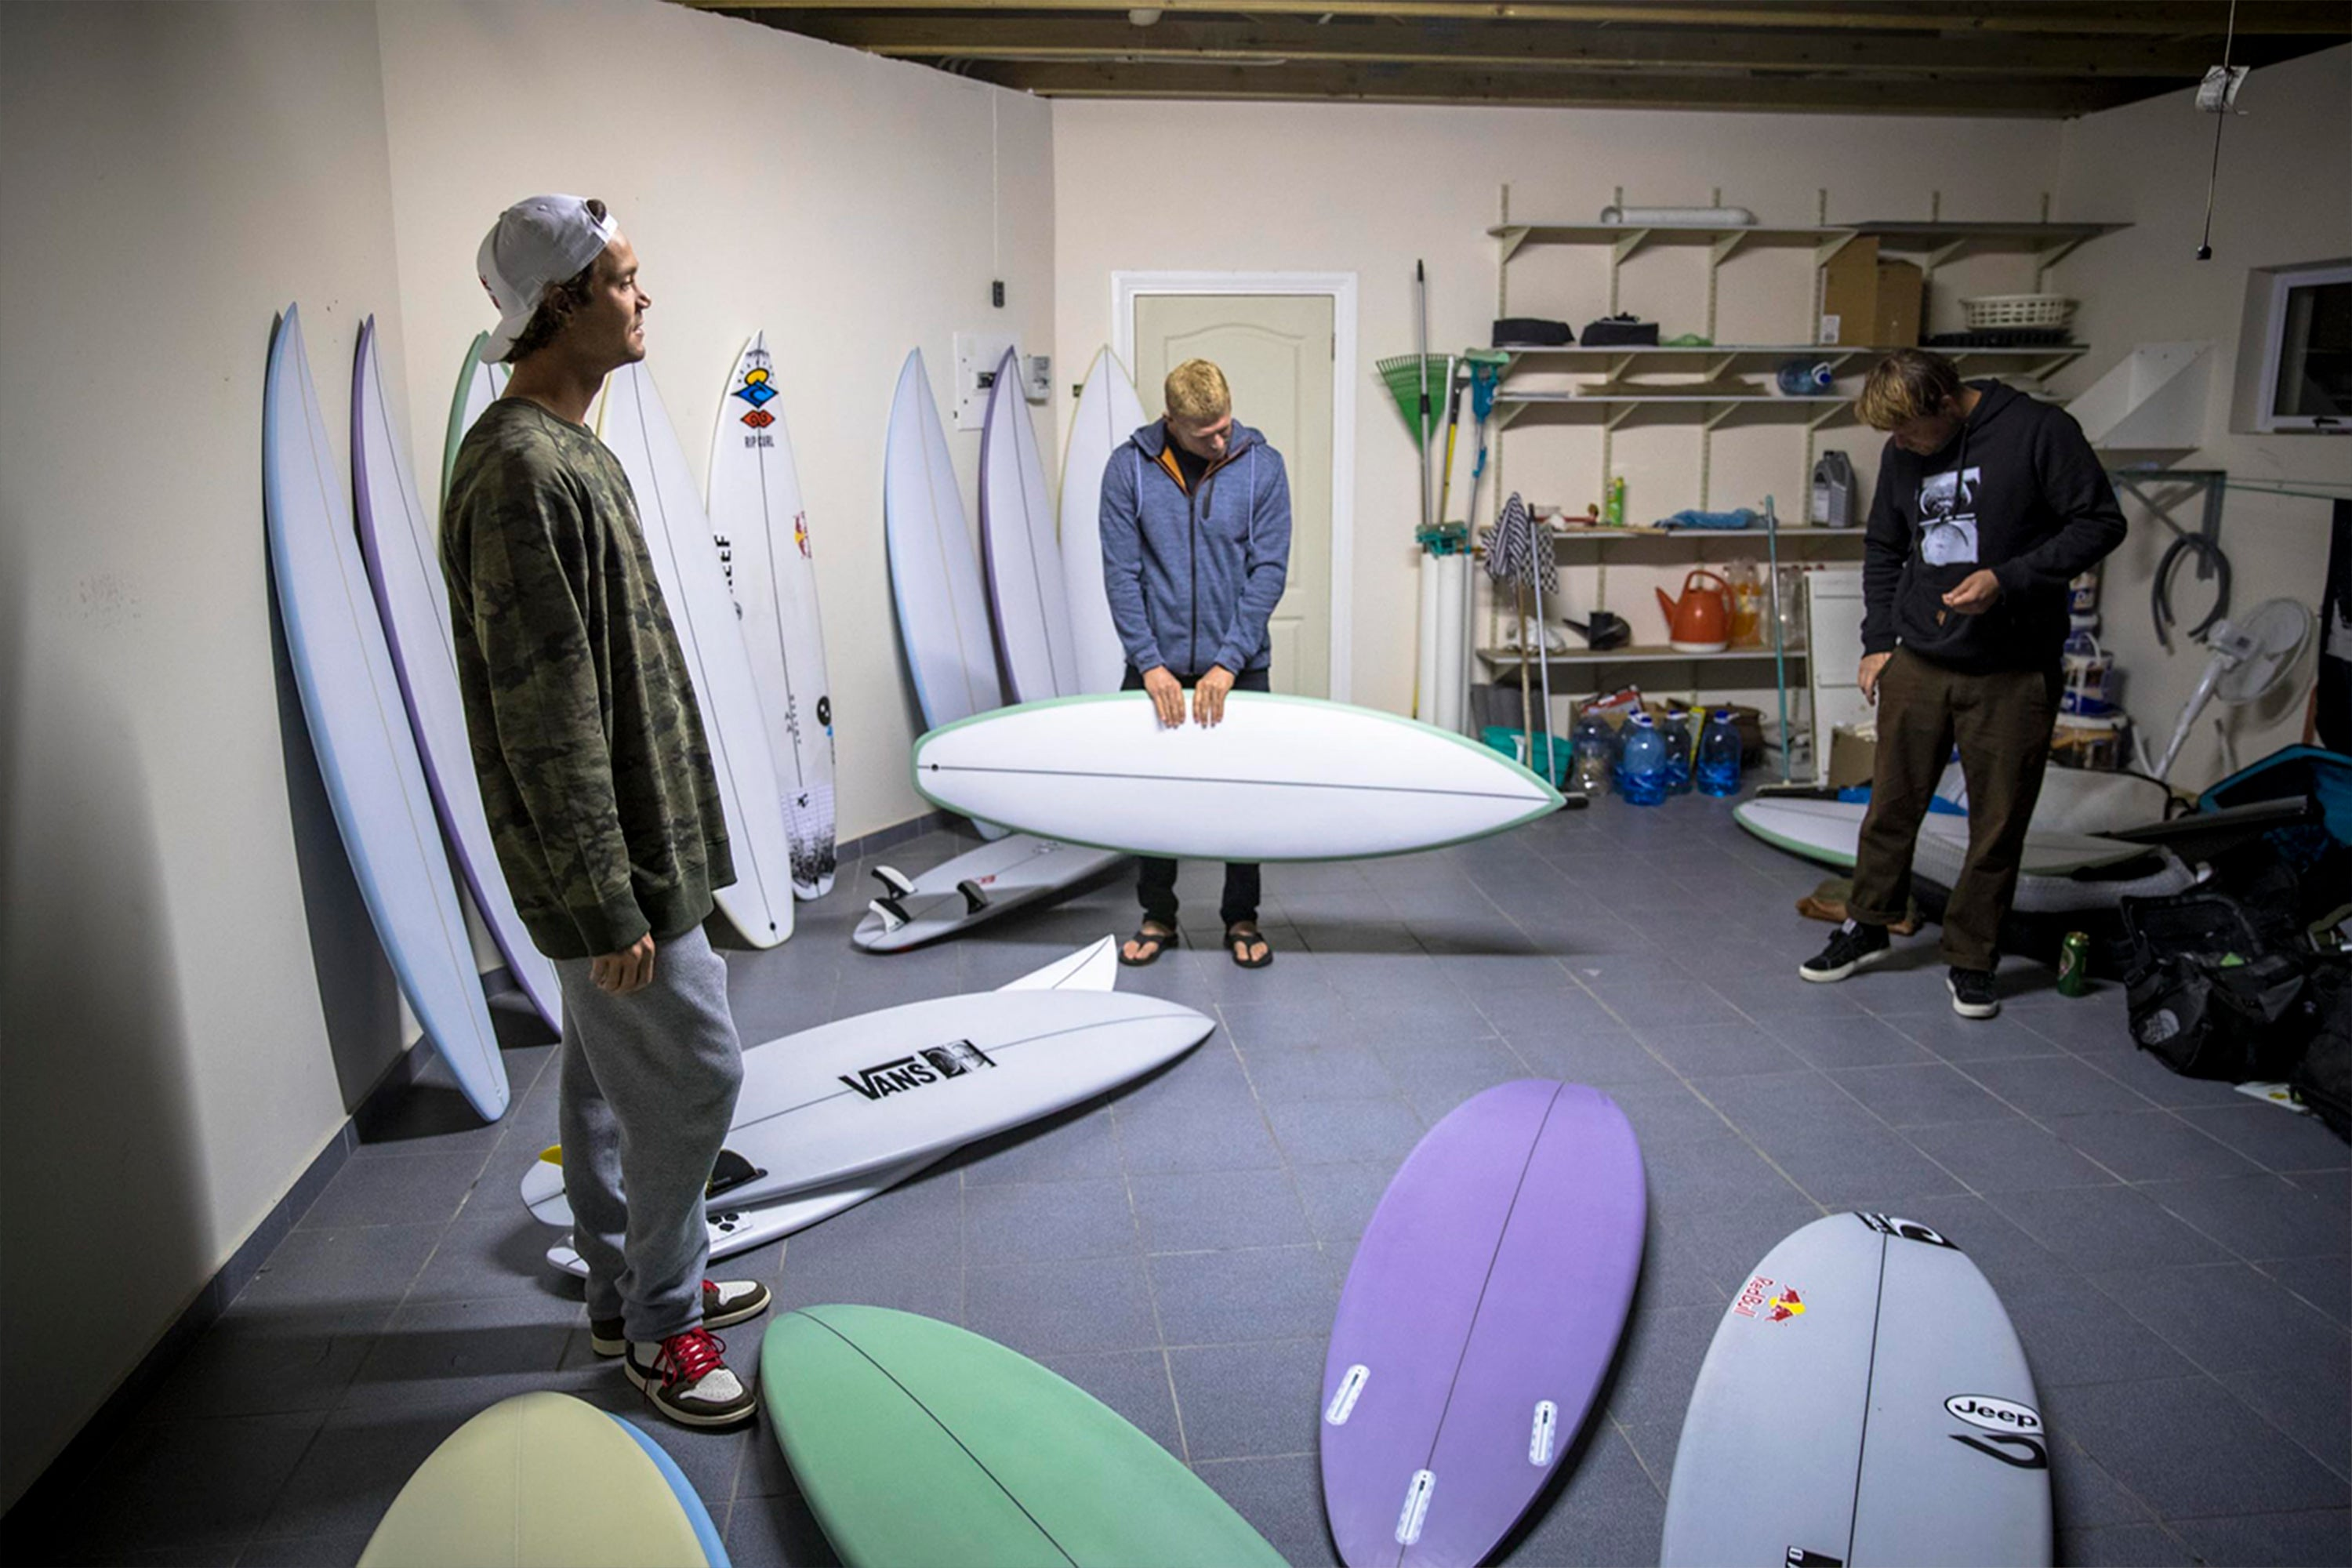 Pukas Darker as seen at SITD surfers: Dane Reynolds, Jordy Smith and Mick Fanning